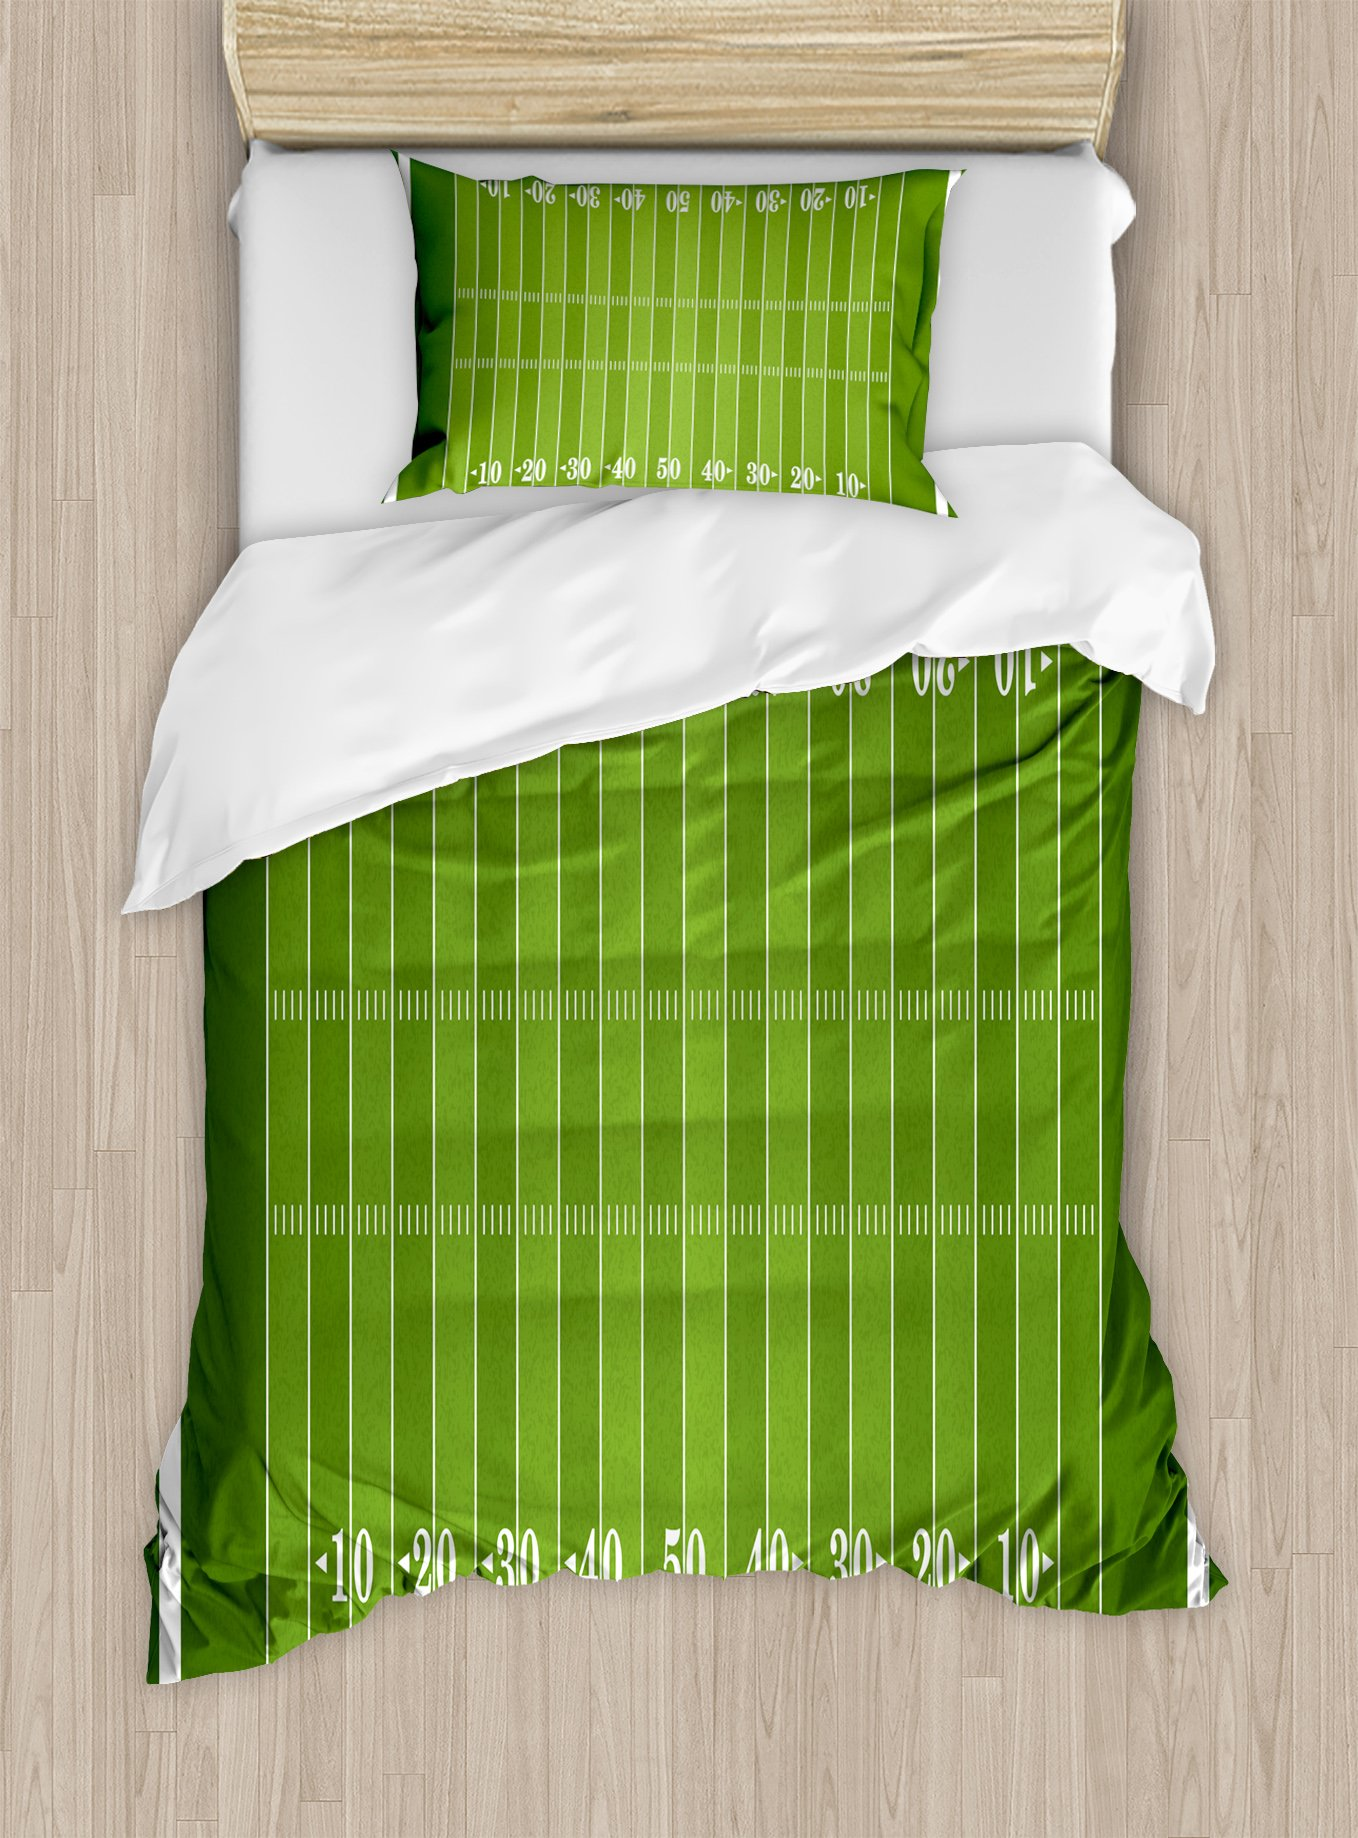 Ambesonne Football Duvet Cover Set Twin Size, Sports Field in Green Gridiron Yard Competitive Games College Teamwork Superbowl, Decorative 2 Piece Bedding Set with 1 Pillow Sham, Green White